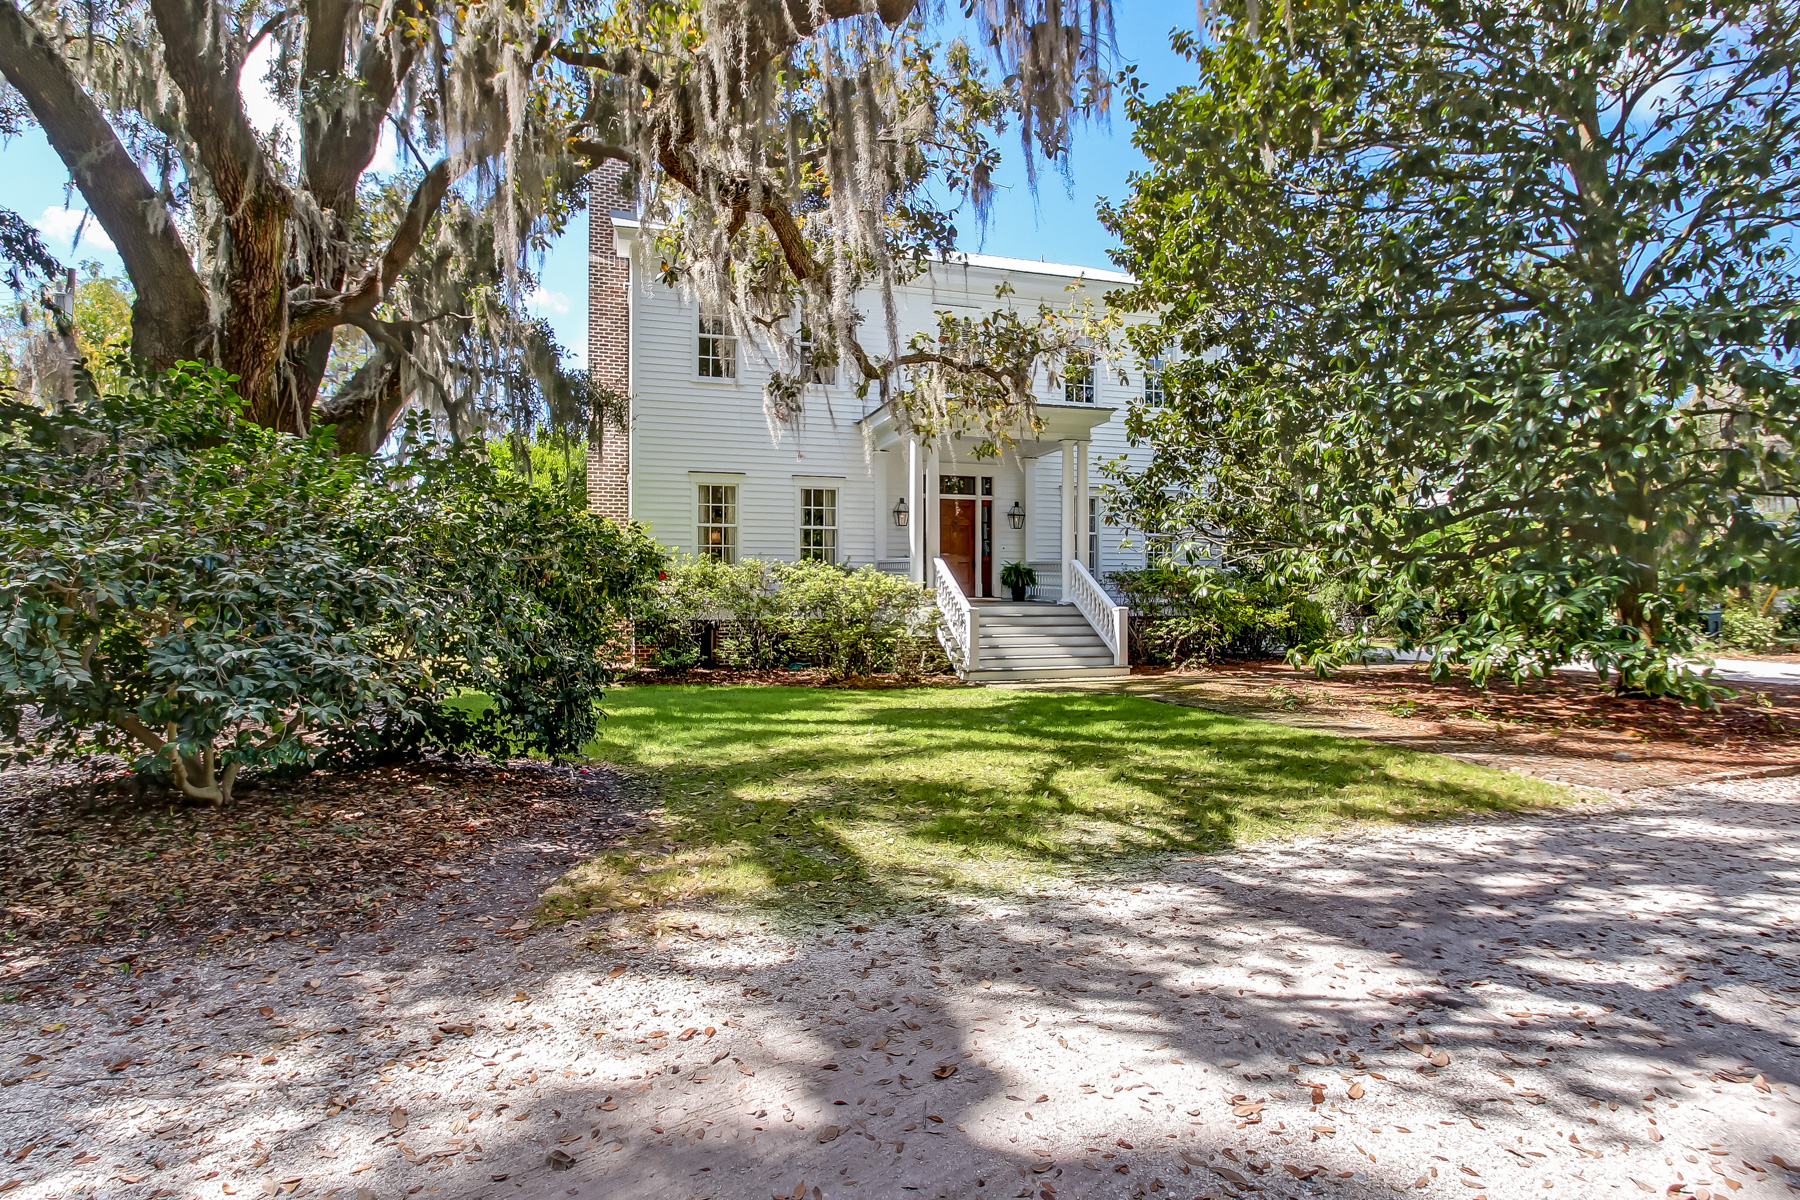 Maison unifamiliale pour l Vente à 805 Dancy Avenue Savannah, Georgia 31419 États-Unis